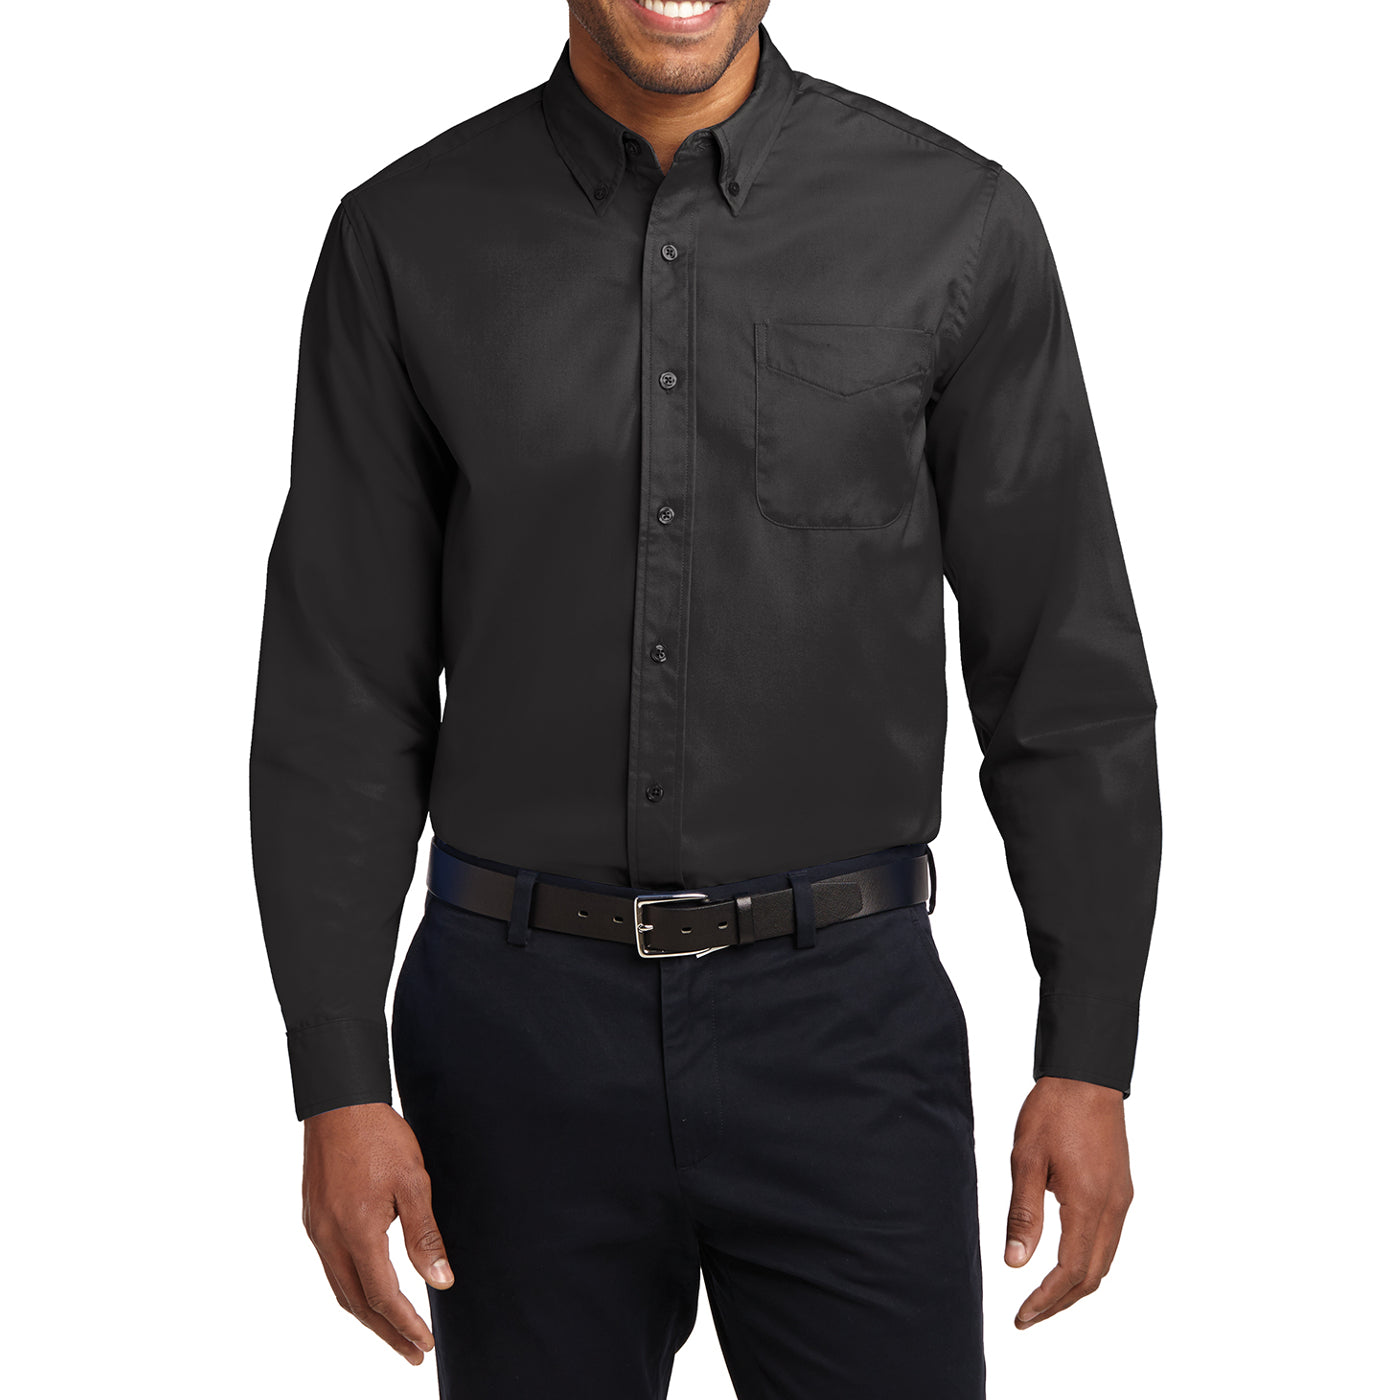 Men's Long Sleeve Easy Care Shirt - Black/ Light Stone - Front